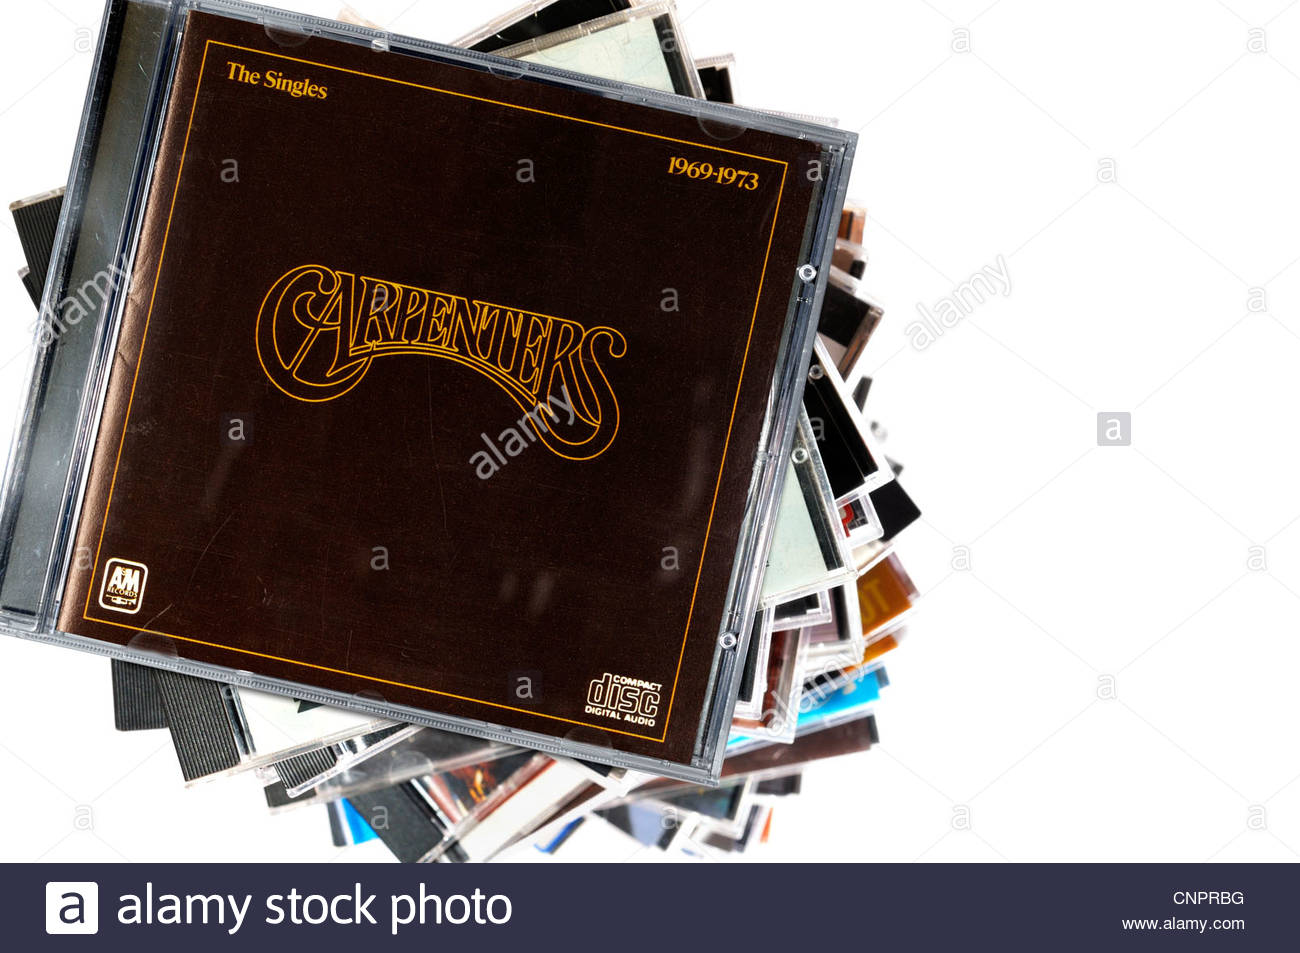 The Carpenters album The Singles 1969-1973, piled music CD cases, England. Stock Photo